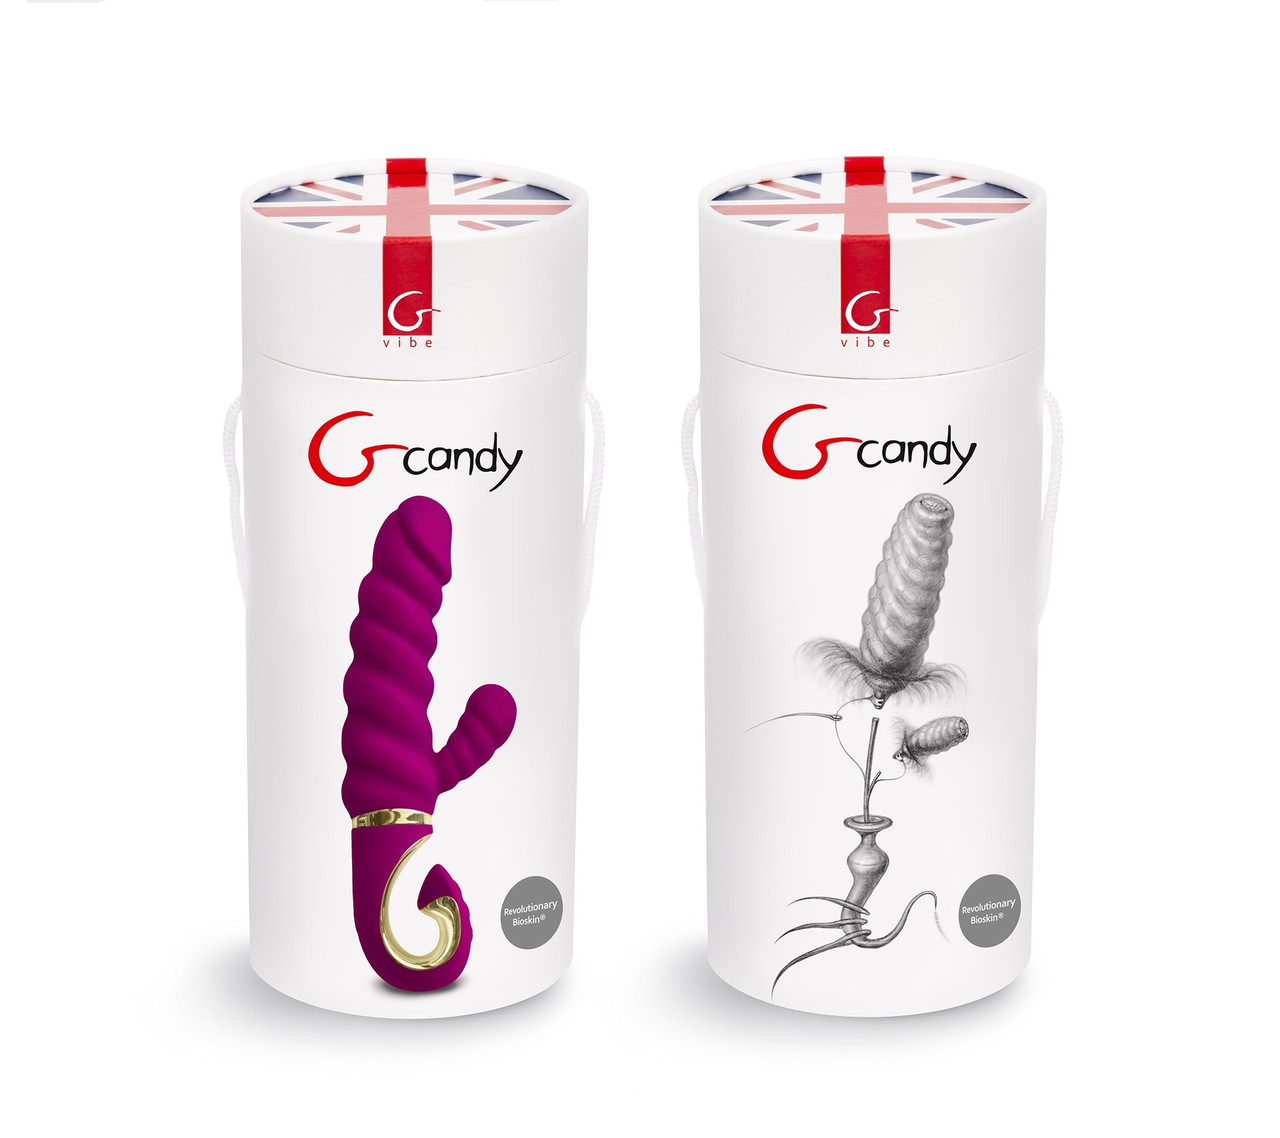 Вибратор Gvibe Gcandy - Sweet Raspberry, 18 см